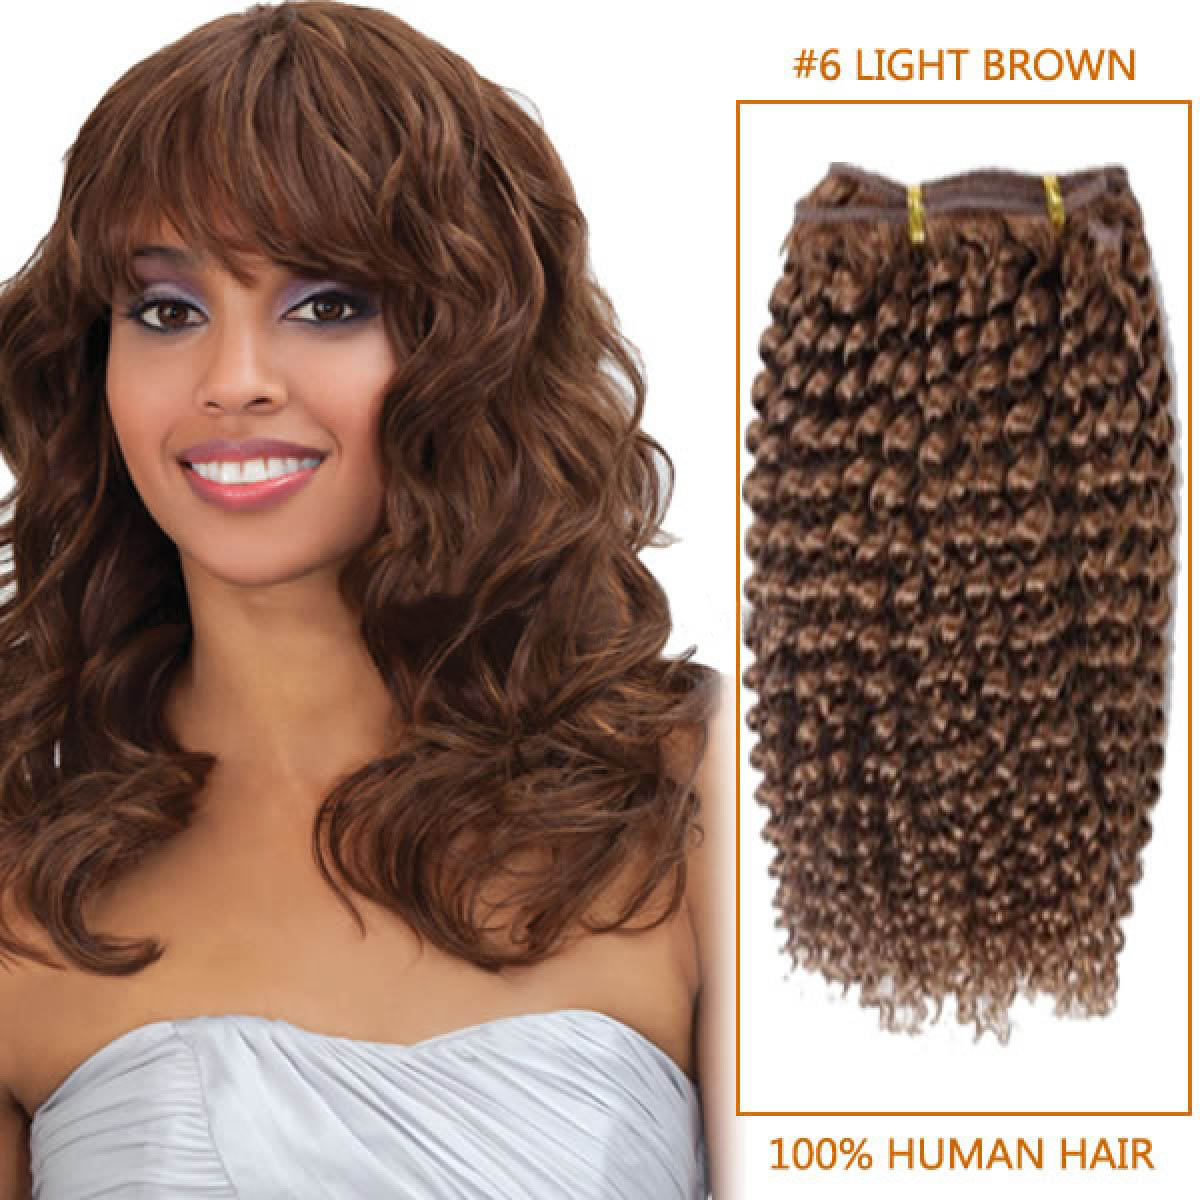 14 Inch  #6 Light Brown Afro Curl Brazilian Virgin Hair Wefts